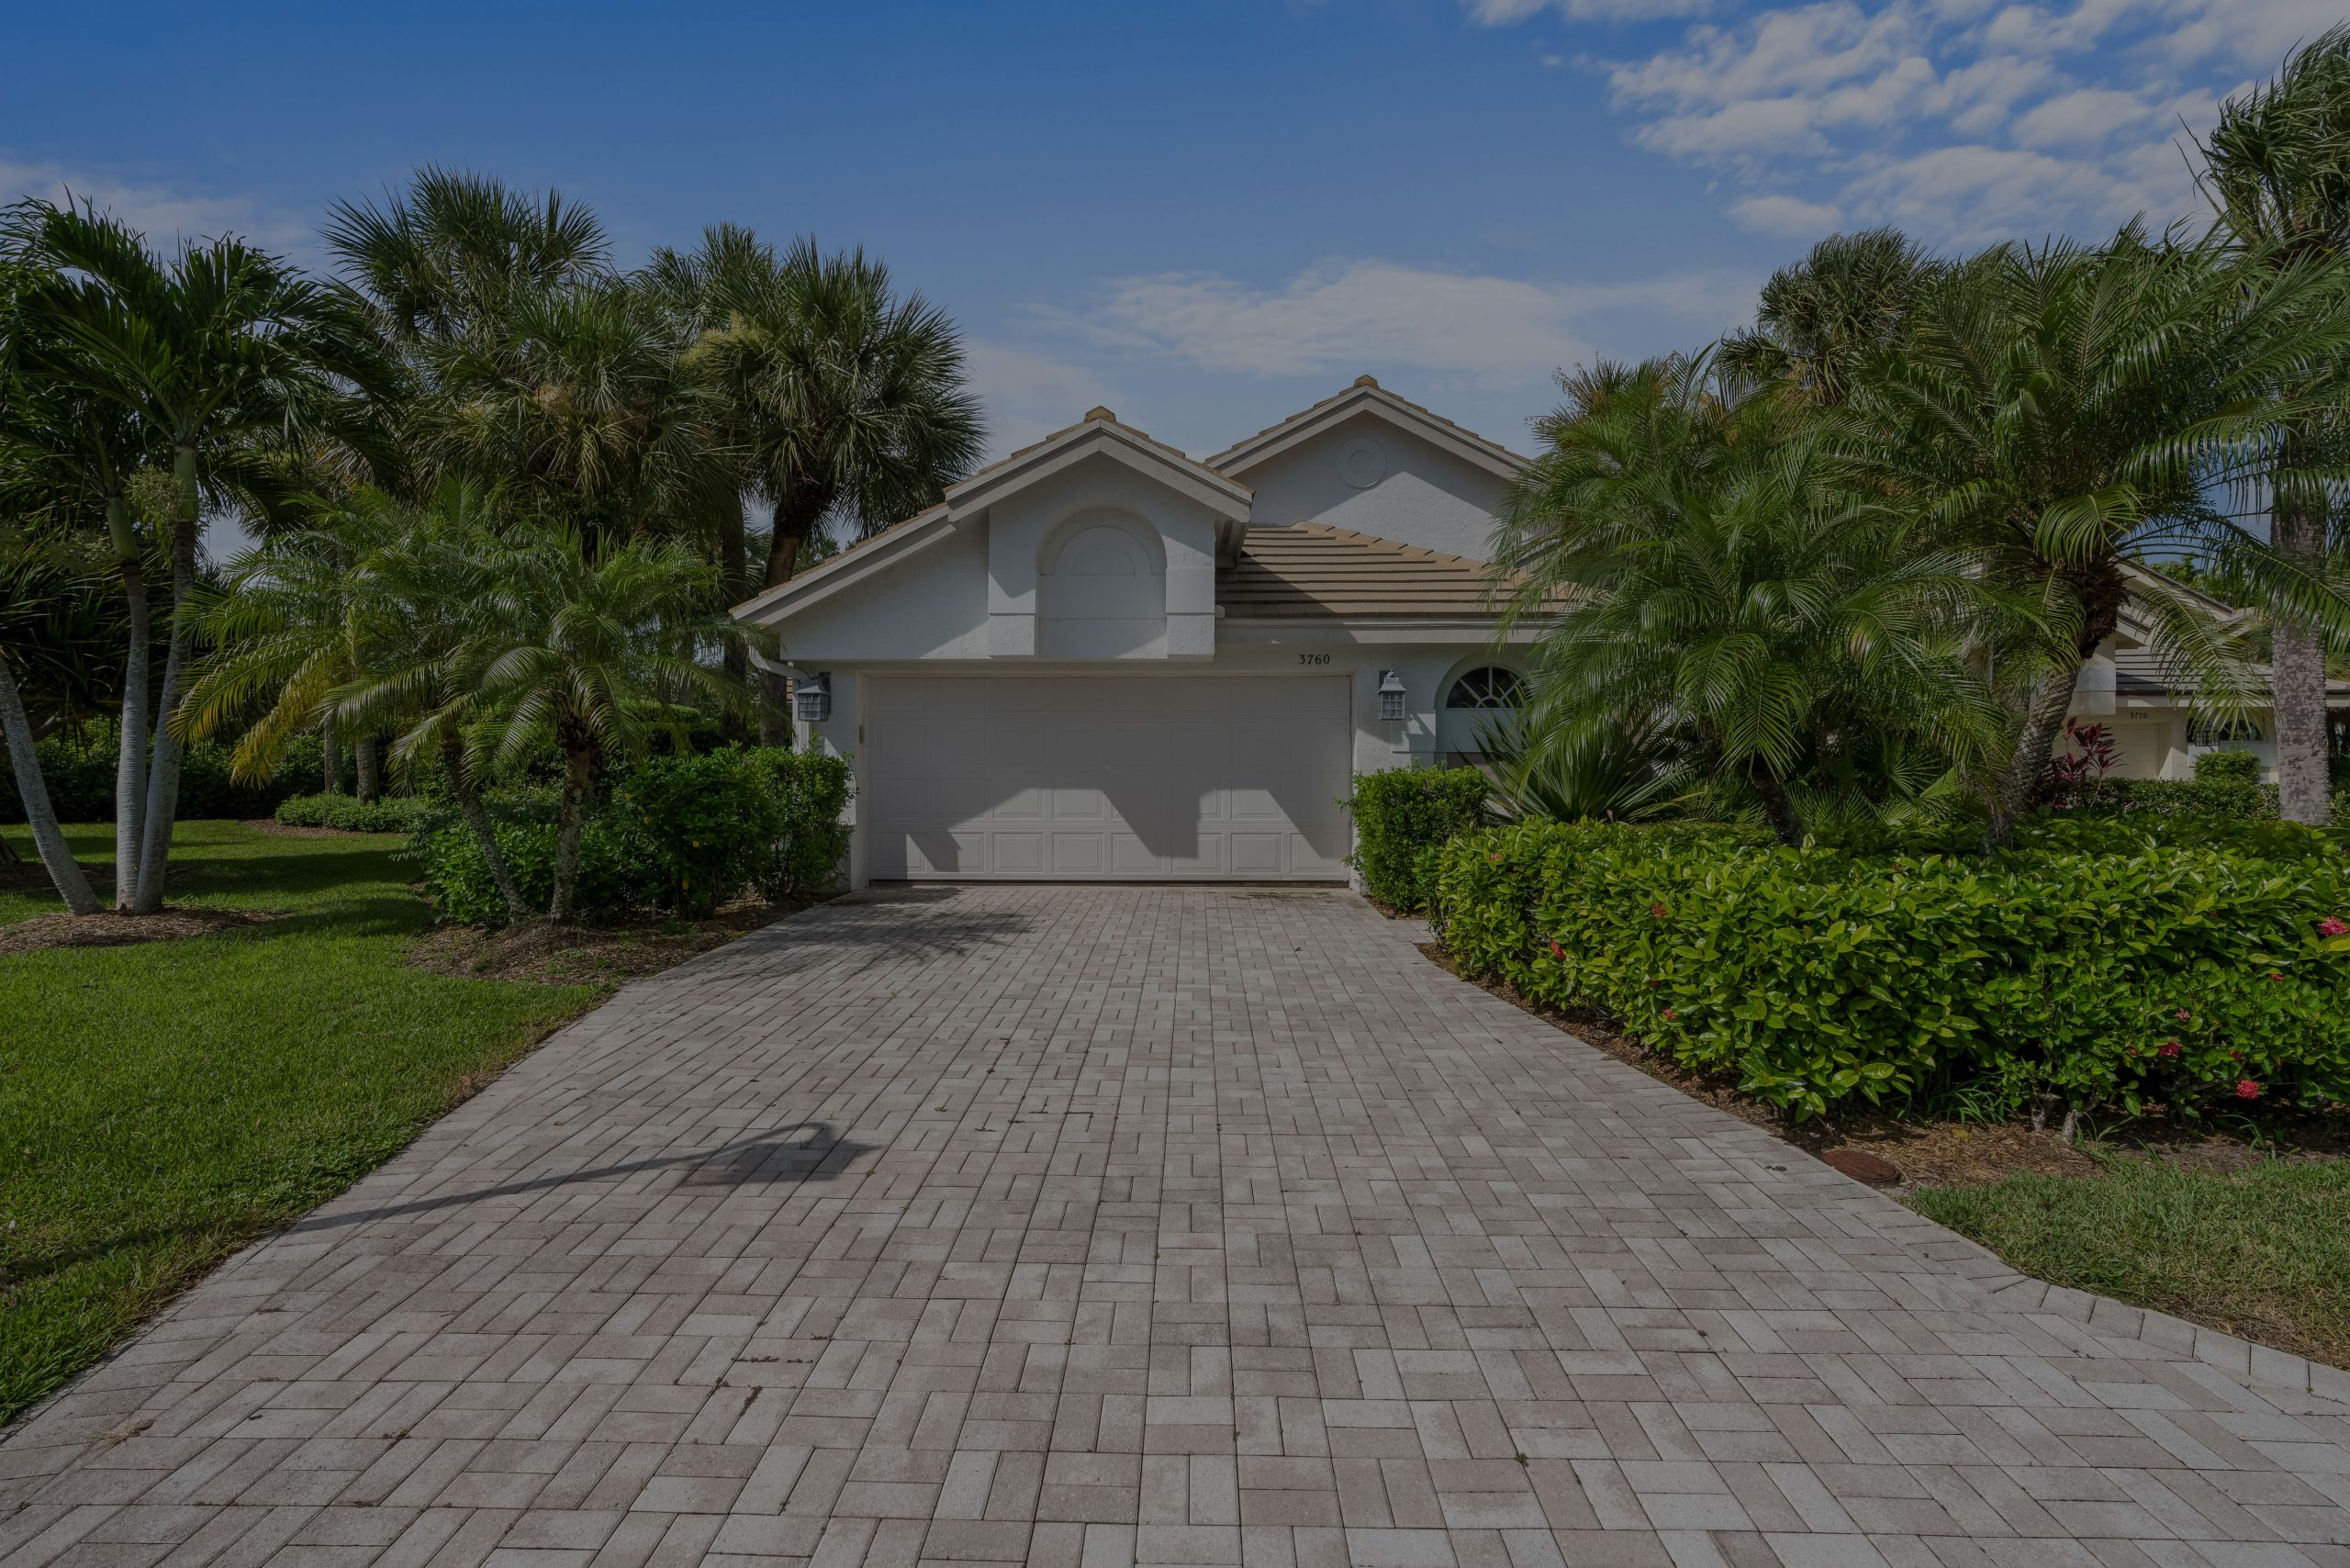 JUST LISTED IN JONATHAN'S LANDING OF JUPITER